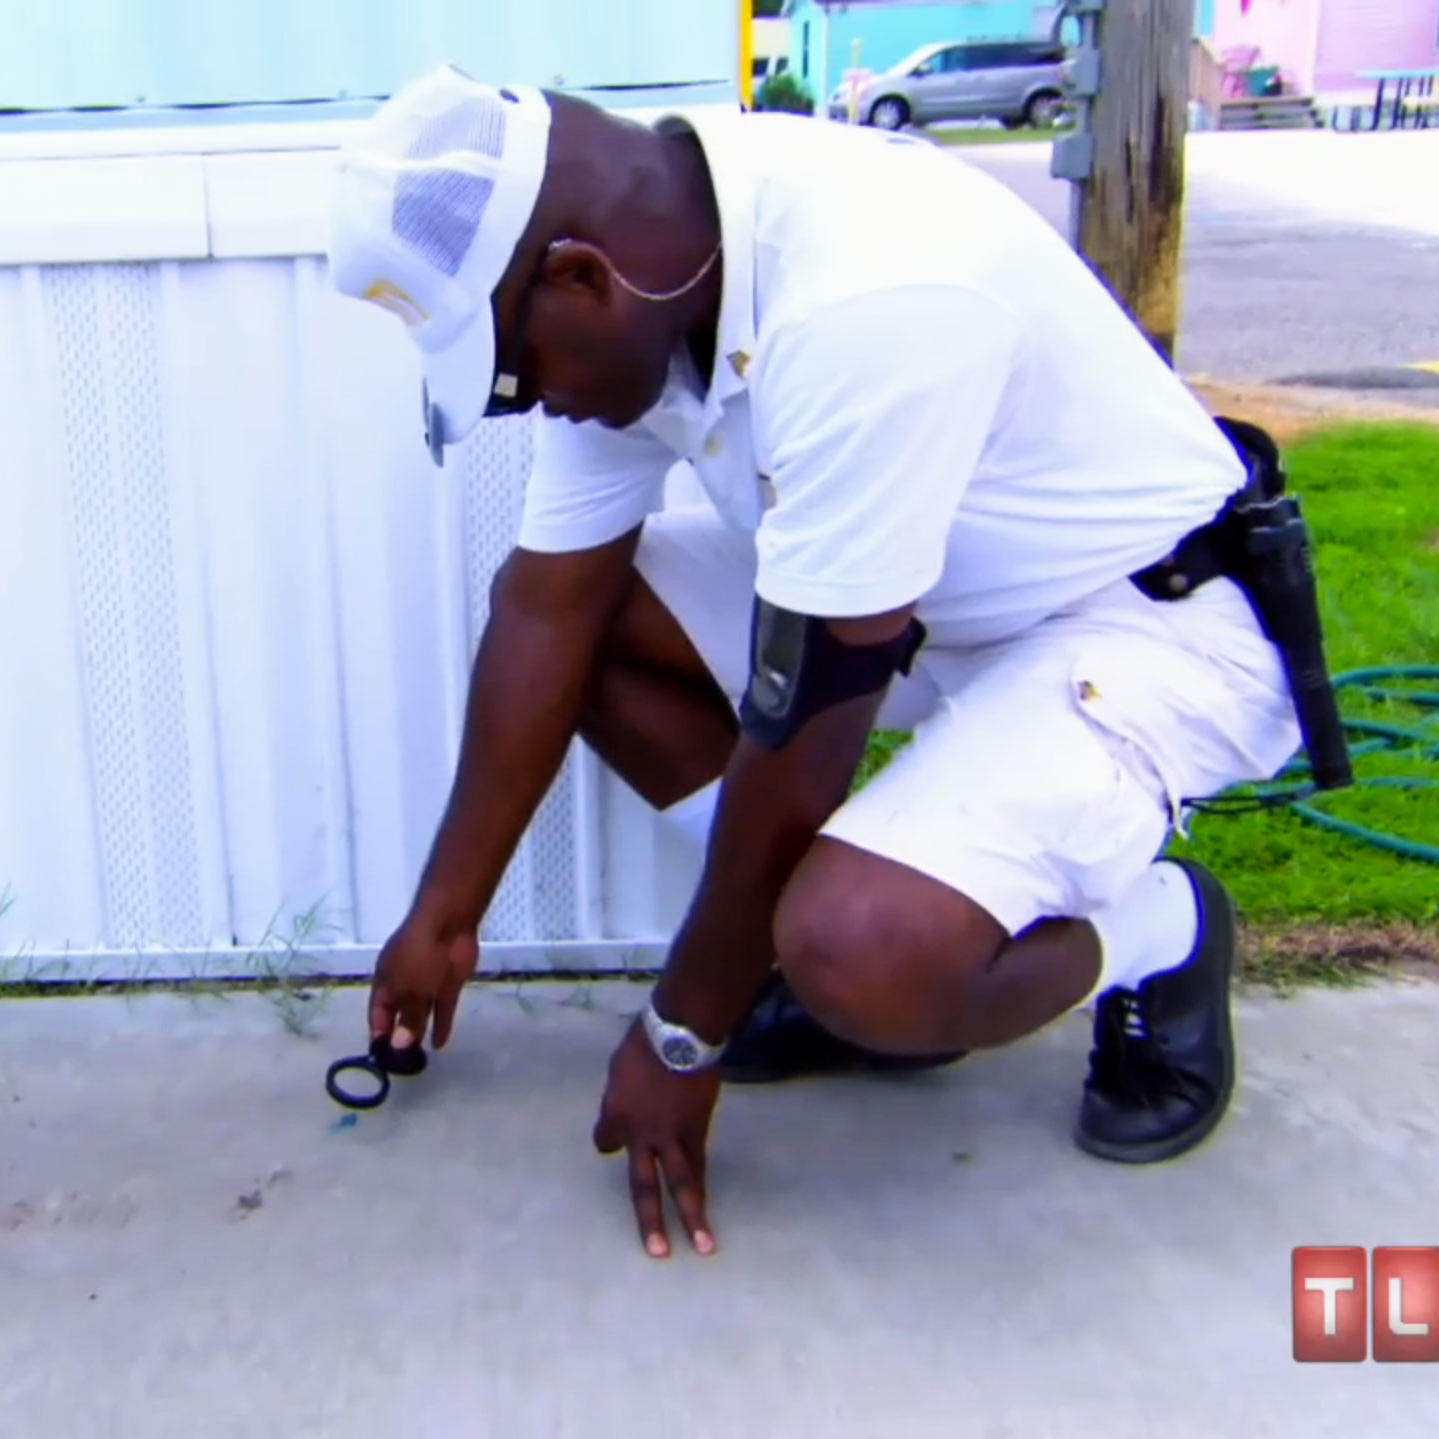 Welcome to Myrtle Manor:Marvin Investigates: Cameras vs. Security at the Trailer Park